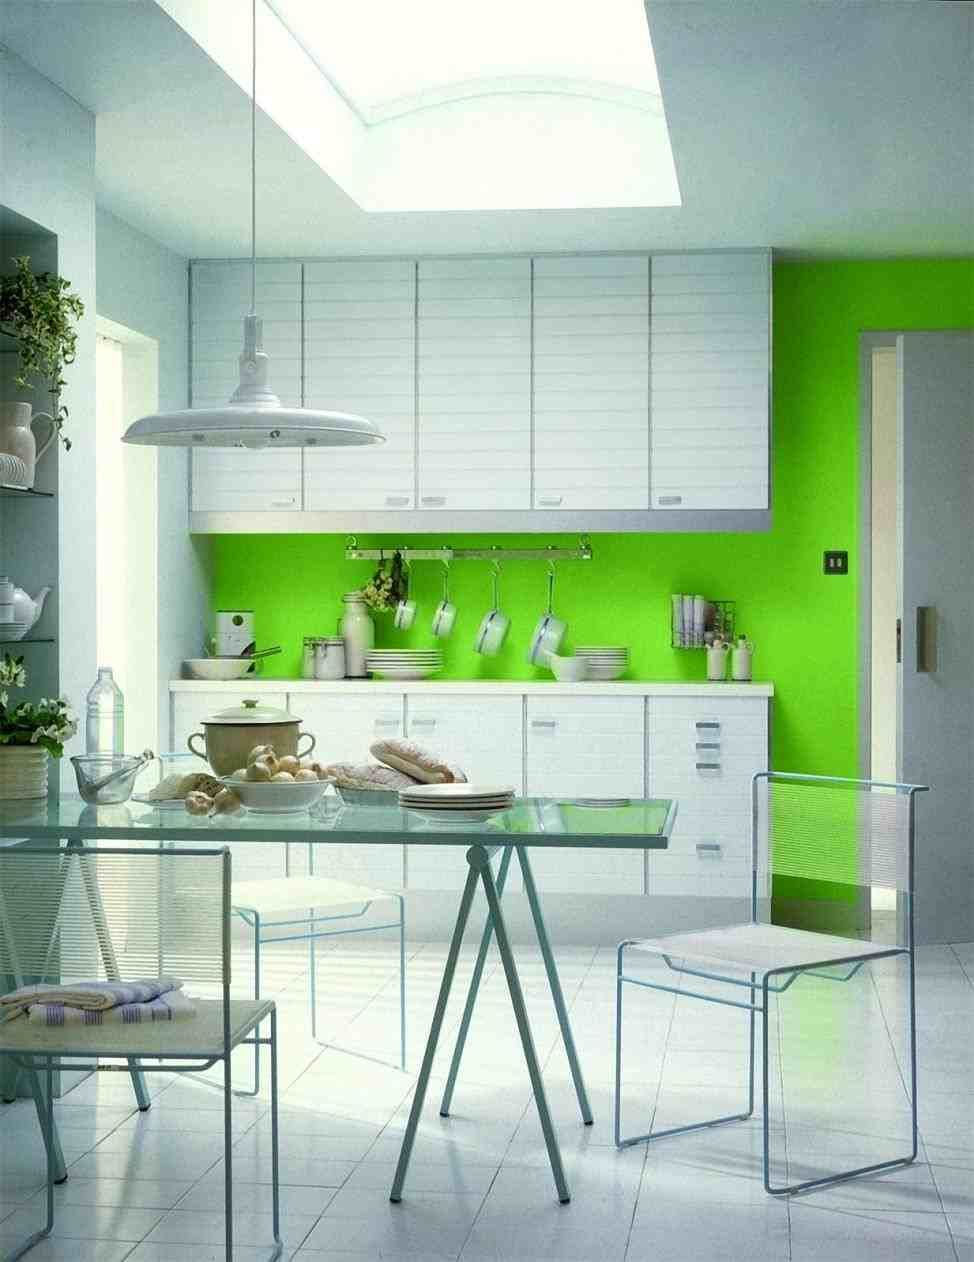 green apple kitchen decor | Home Ideas | Pinterest | Apple kitchen ...